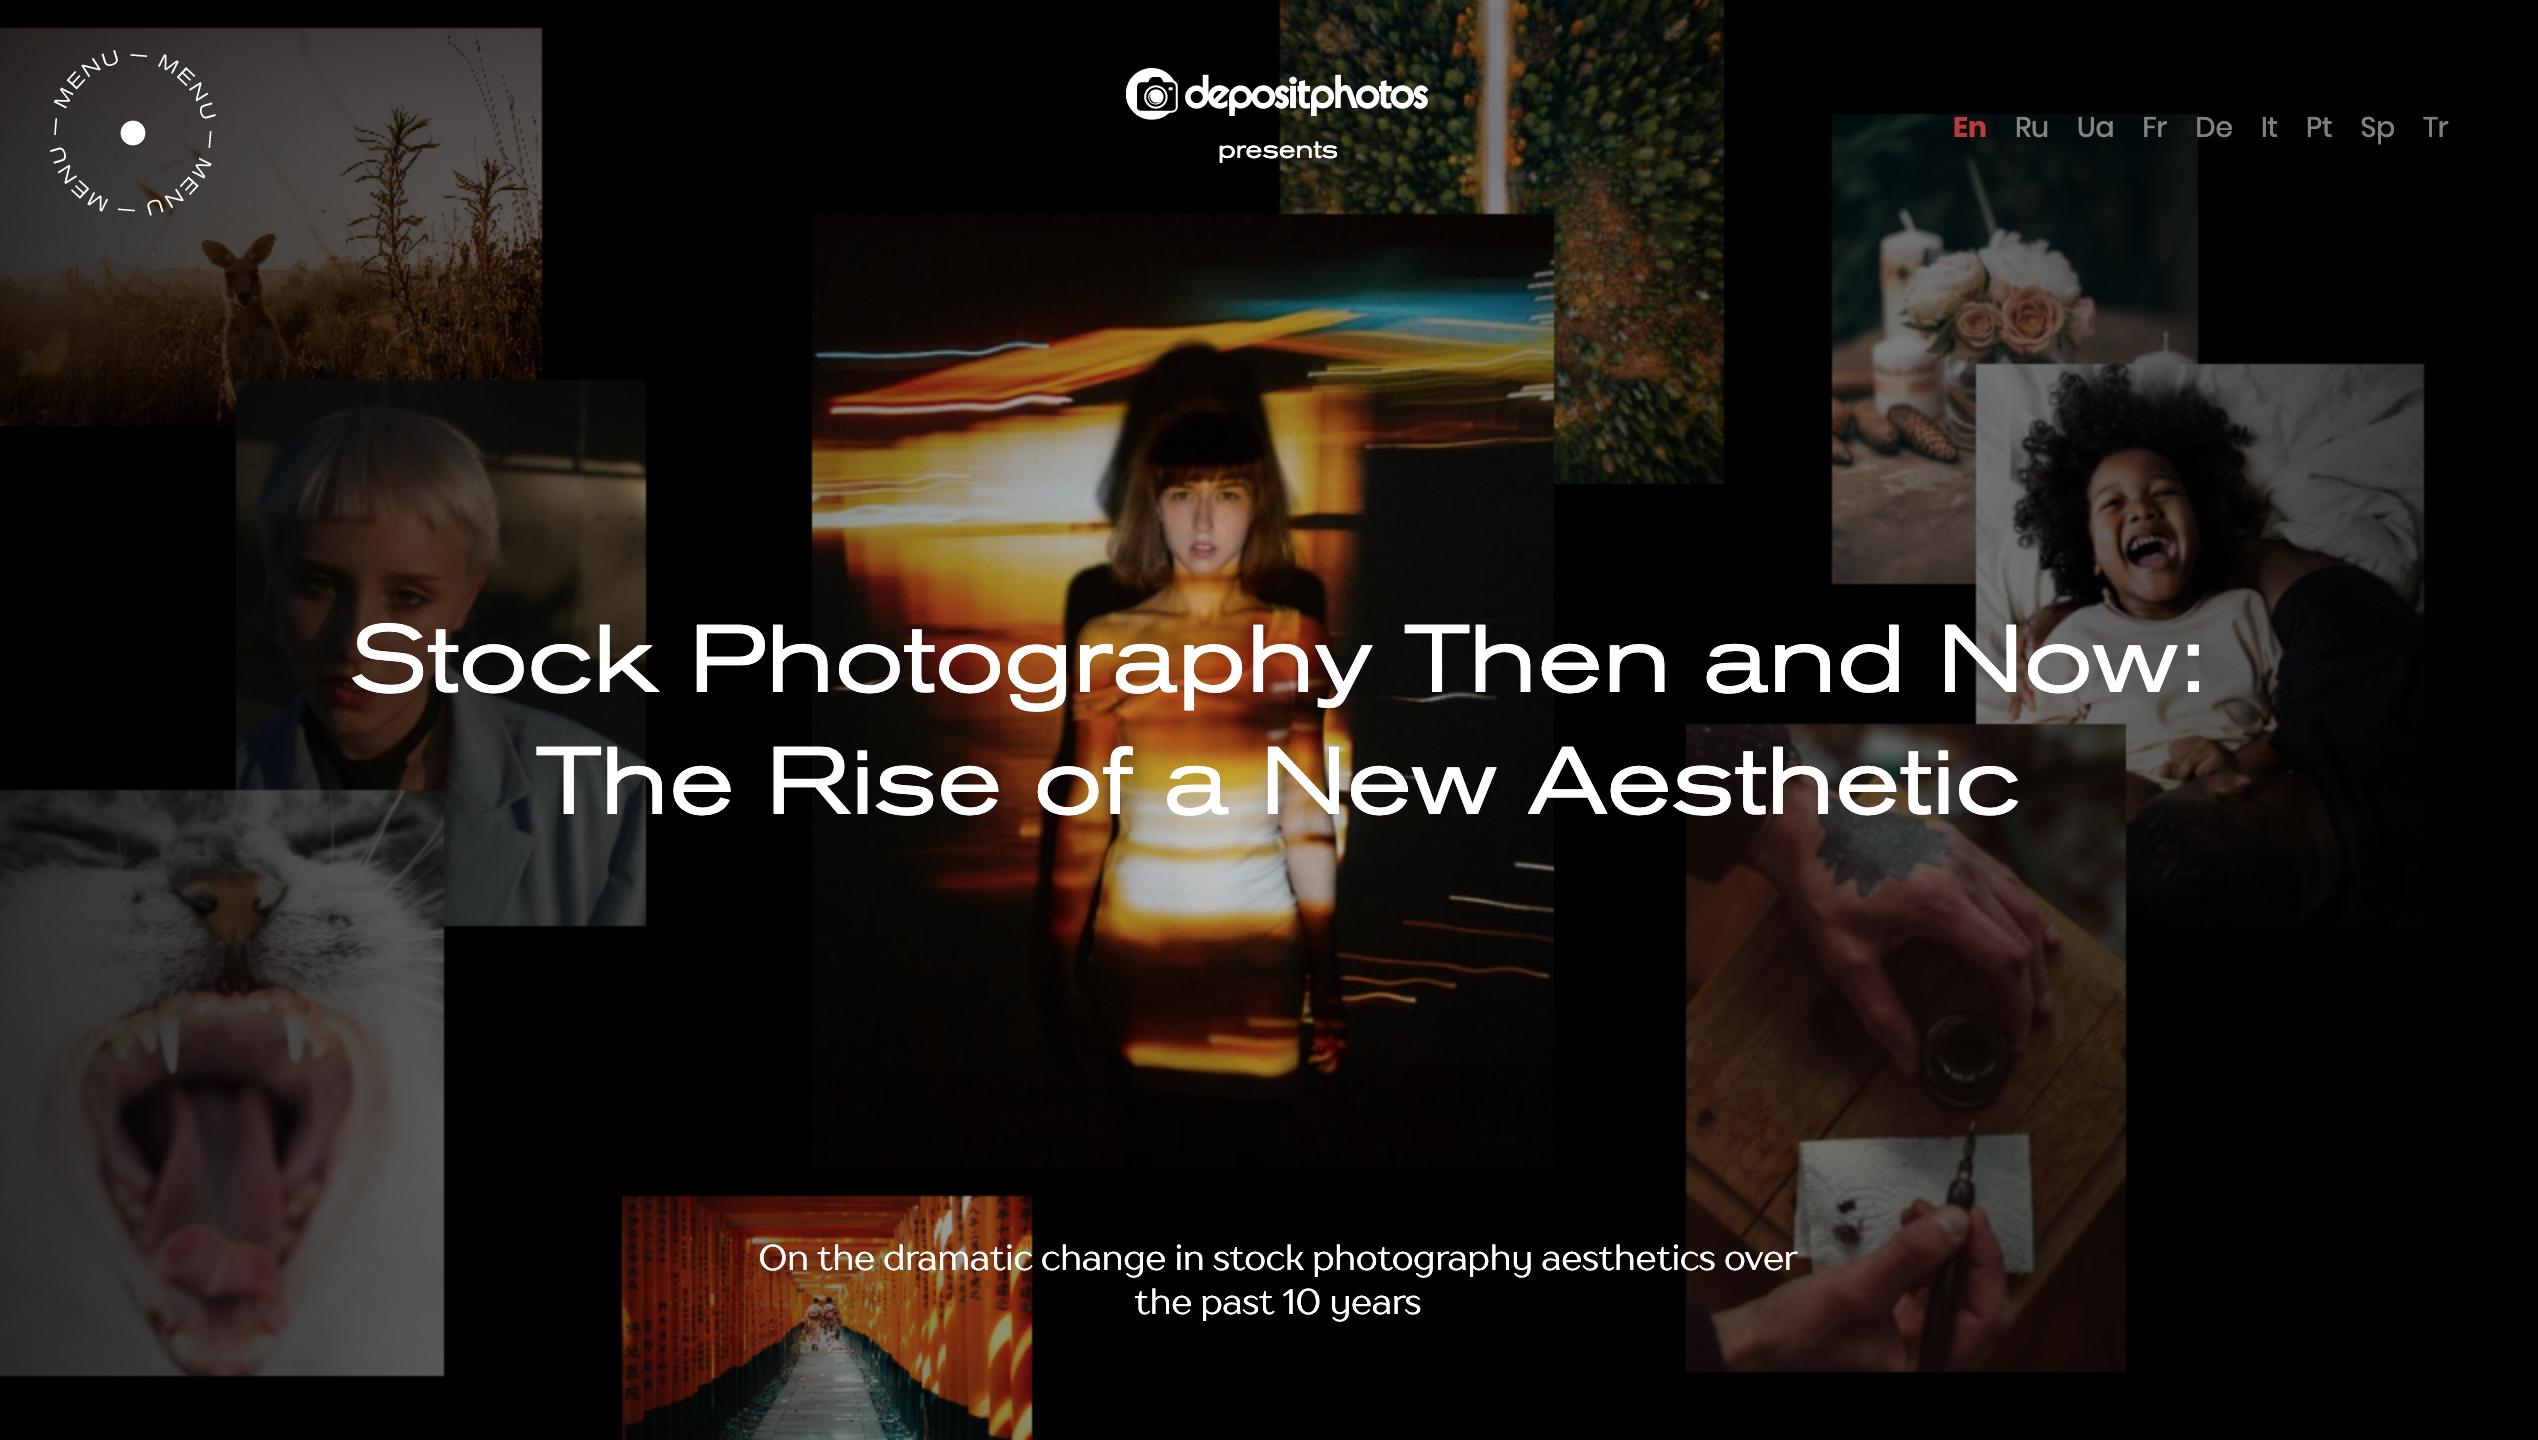 Stock Photography Then and Now